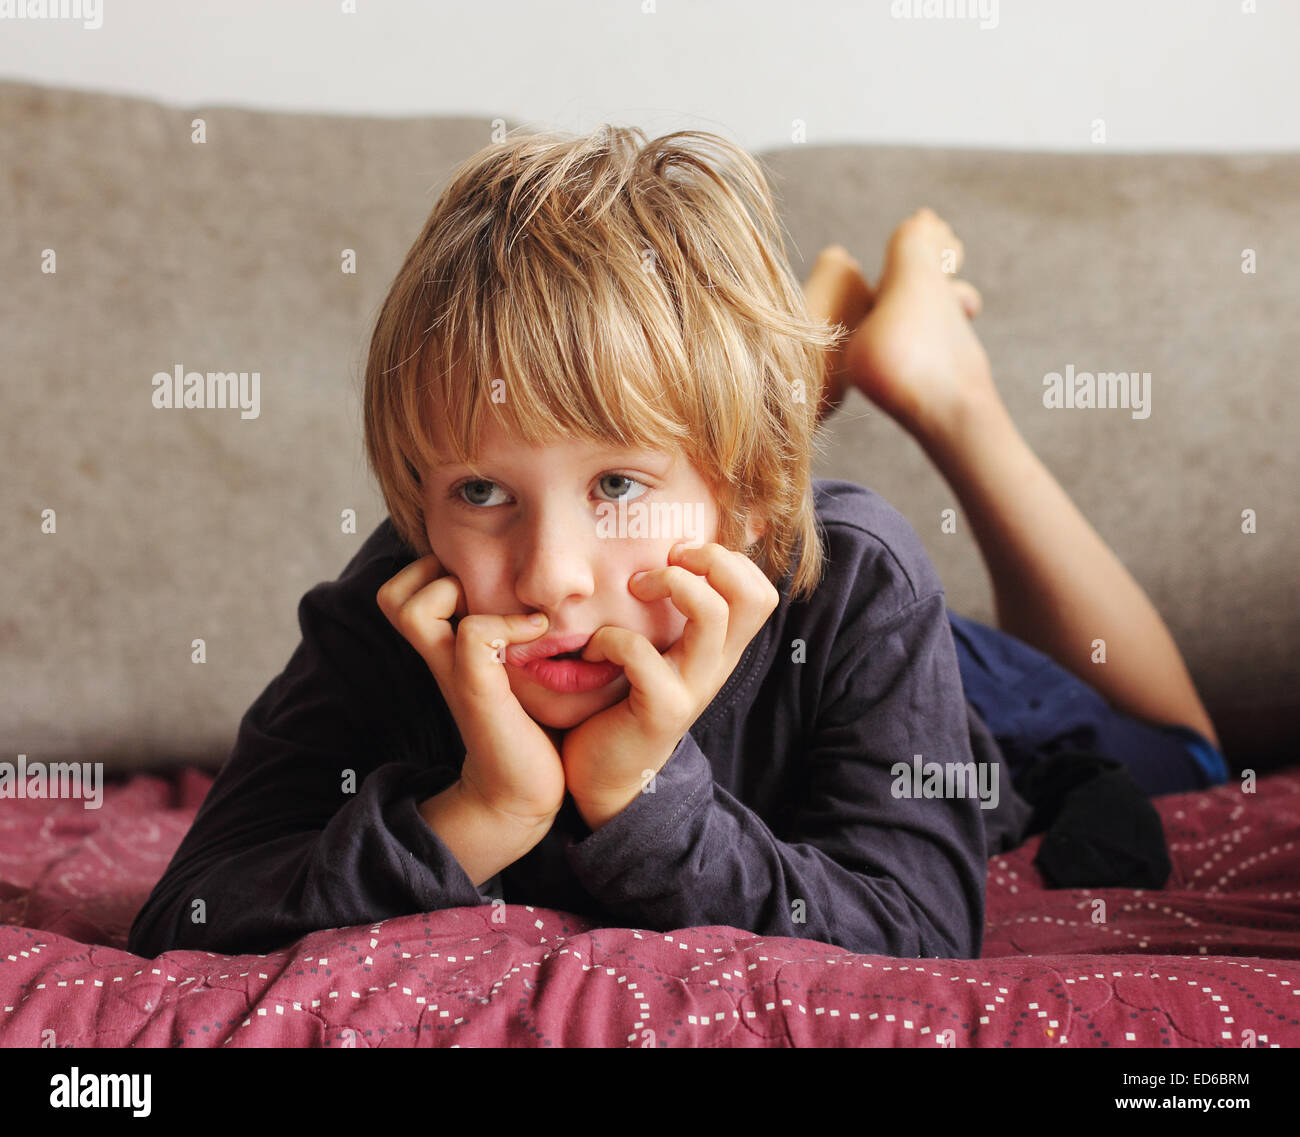 portrait of cute 5 years old child boy - Stock Image